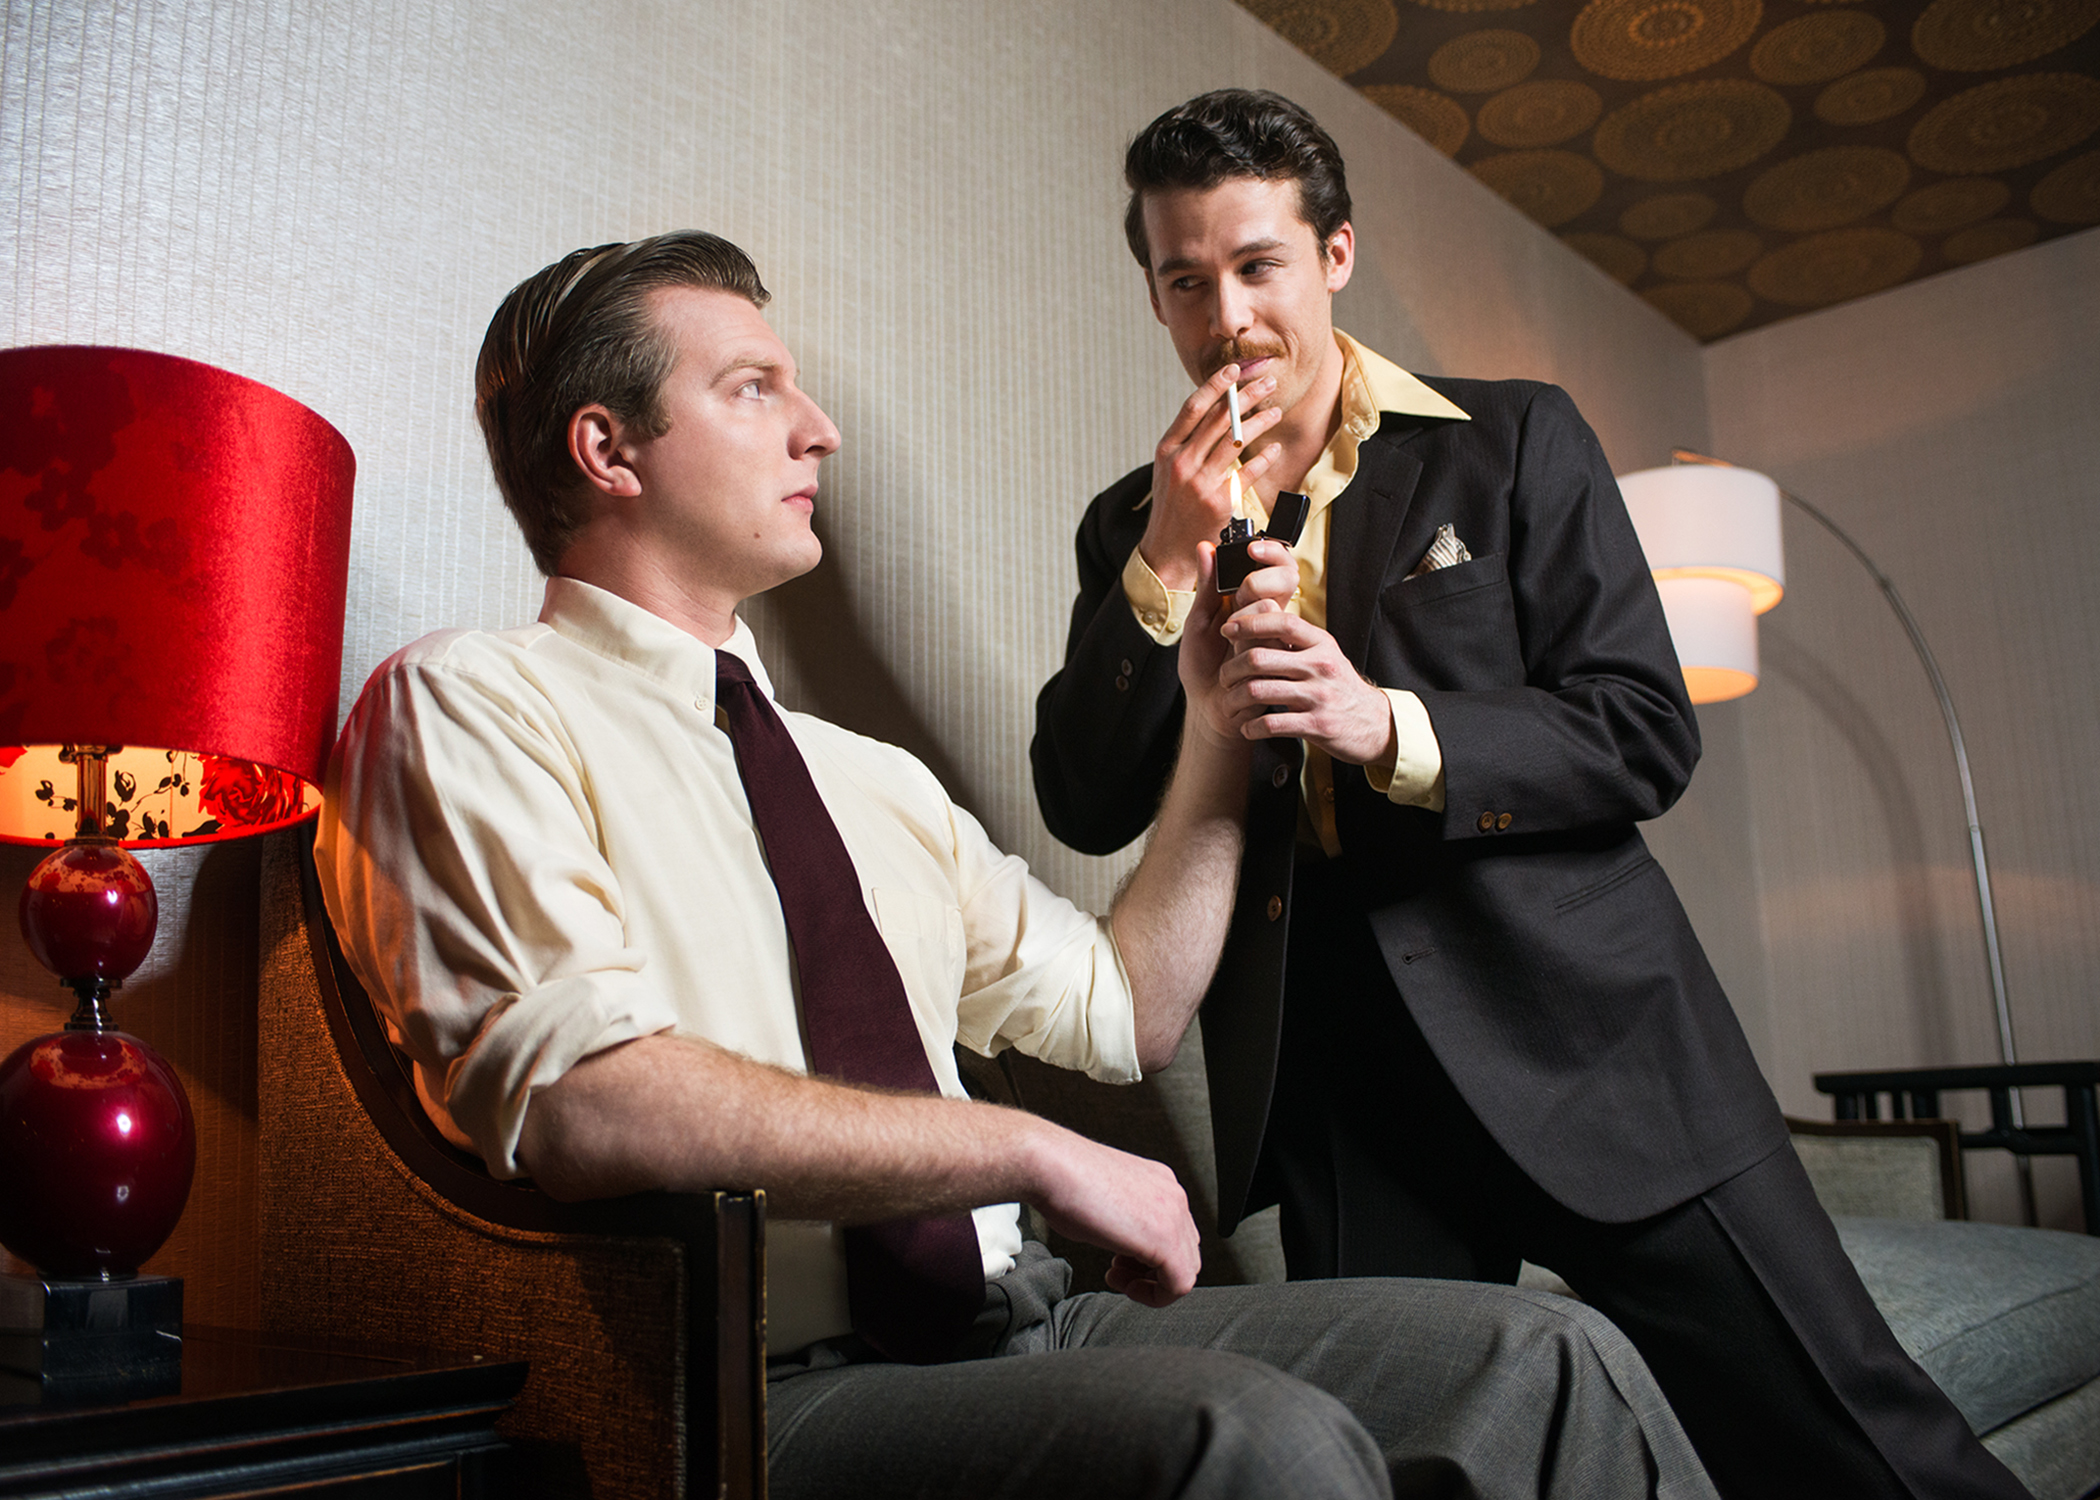 L to R: William Inge (Adam Niemann) finds himself drawn to Tennessee Williams (Brennan Pickman-Thoon). Photo by Lois Tema.